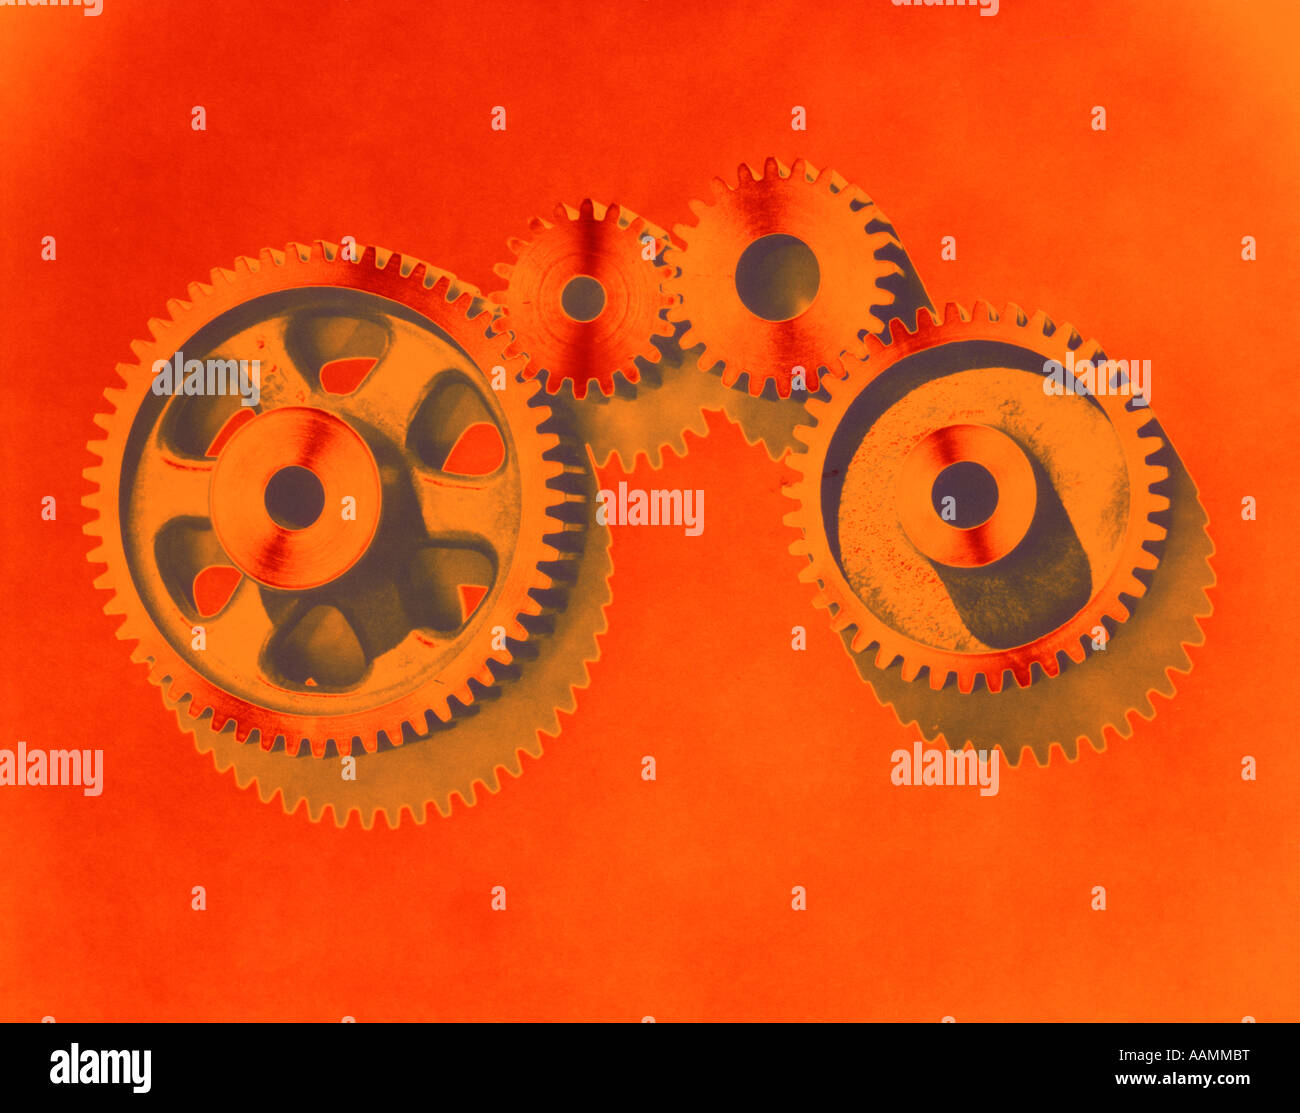 1970s PATTERN OF GEARS POSTERIZED COLOR ORANGE GREEN INDUSTRY - Stock Image